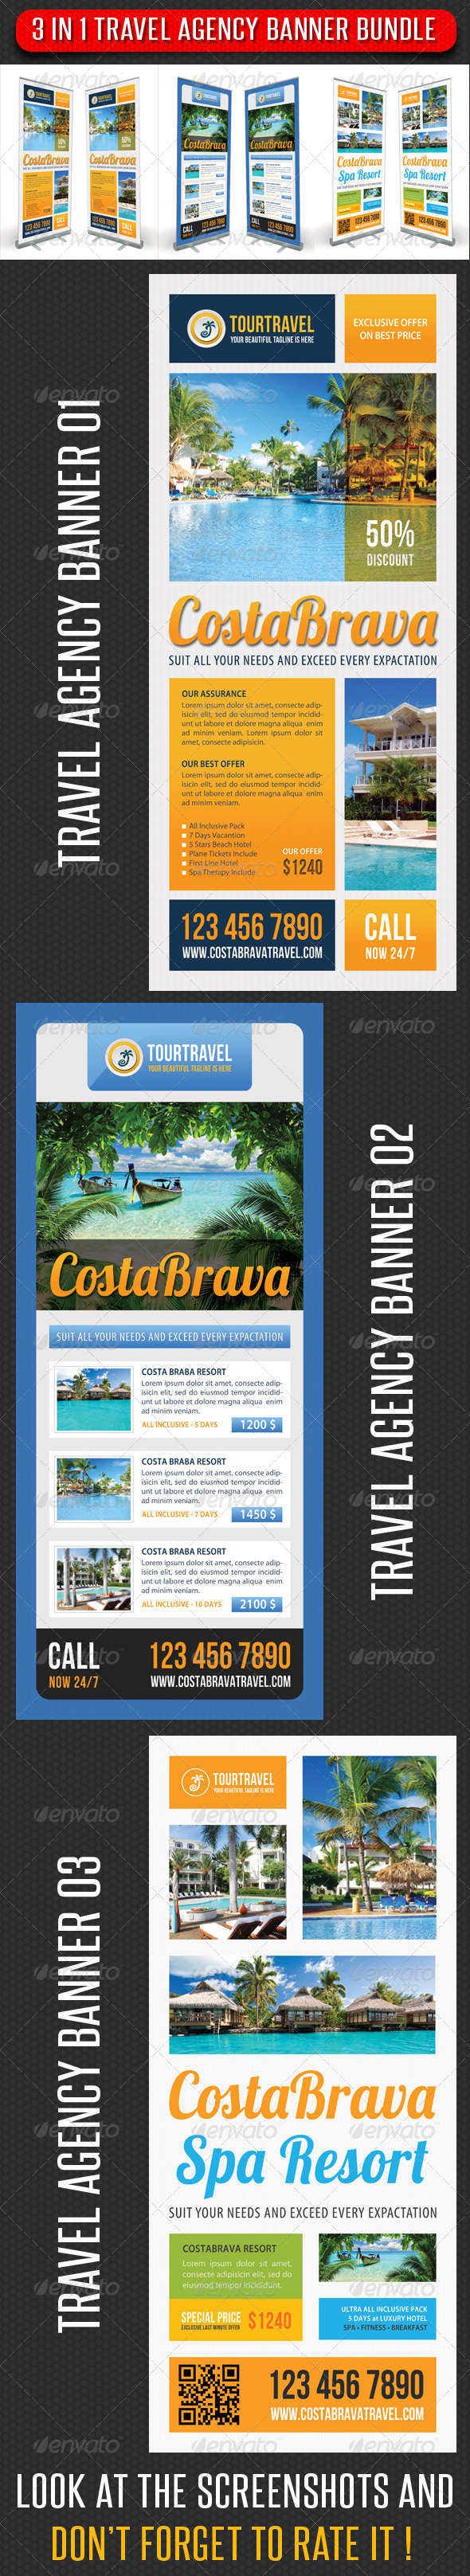 3 in 1 Travel Agency Banner Bundle 02 - Signage Print Templates